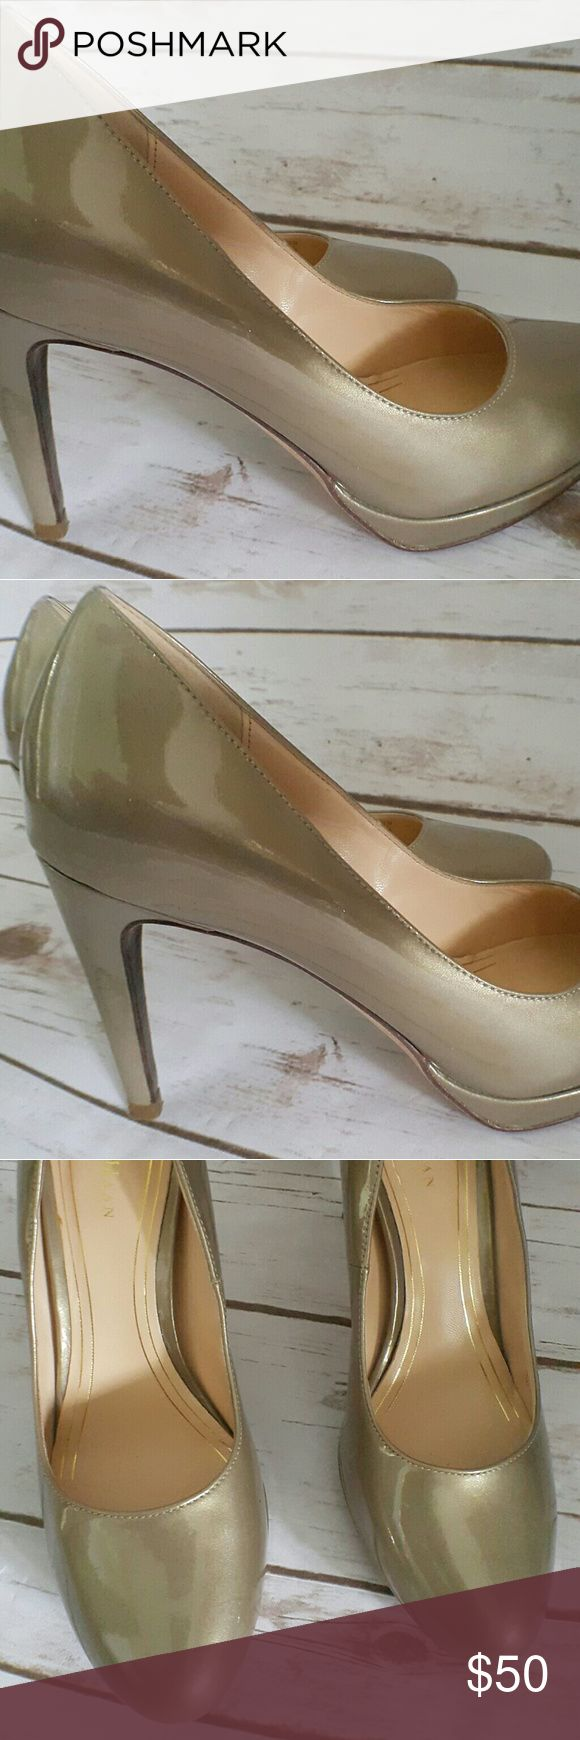 "Cole Haan Gold Metallic Patent Leather Pumps Nike Air 3 inch closed toe leather heels with small platform. No scuffs or scrapes. Length -8"" Width- 2.5"" (7B) (not  a gold metallic chrome) Cole Haan Shoes Heels"